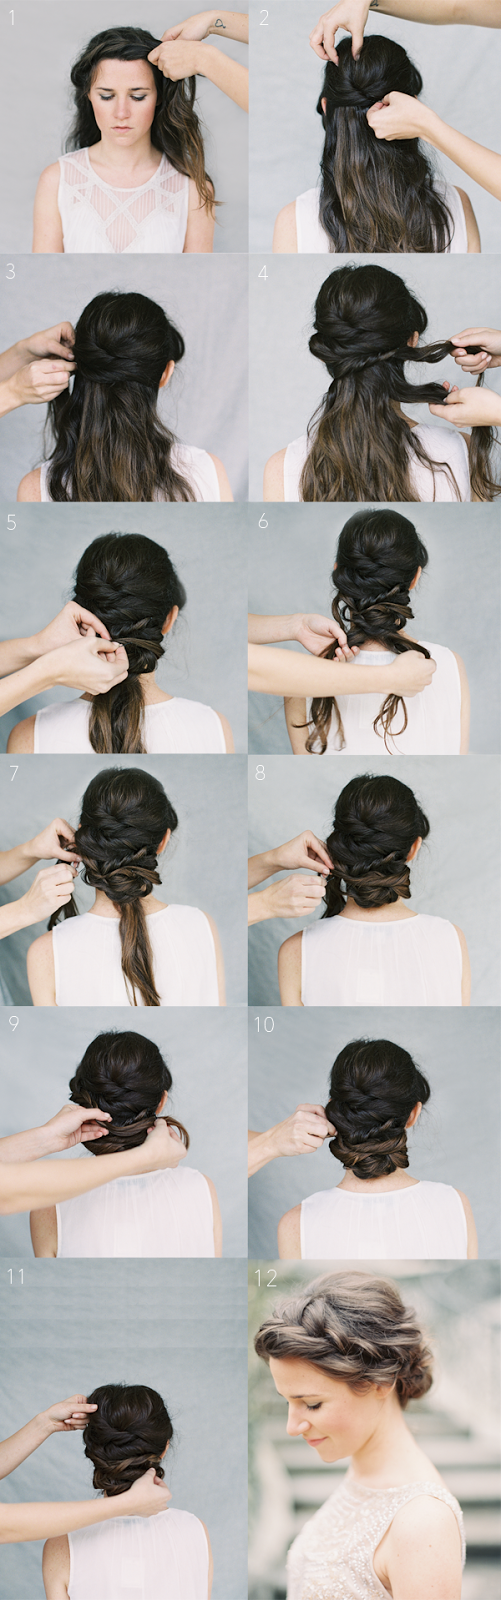 hairstyles for long hair braids steps